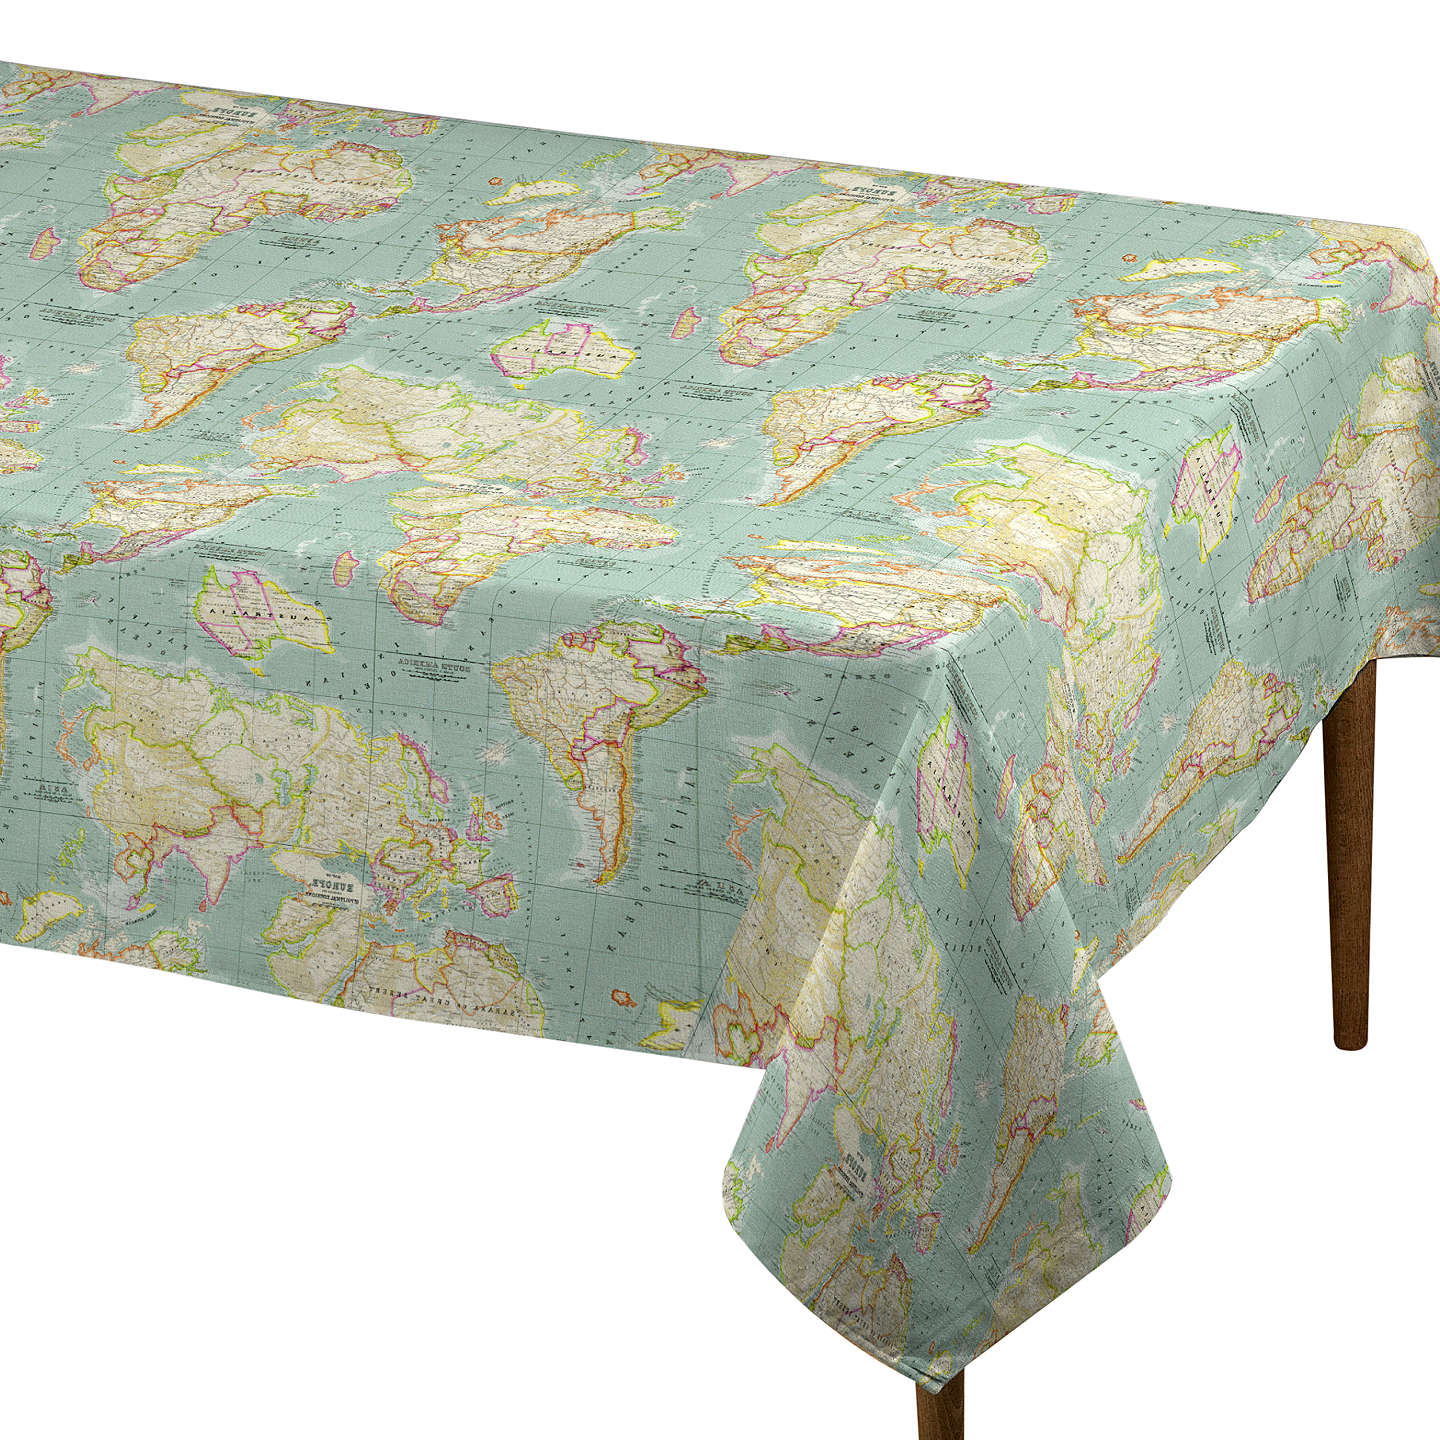 John lewis world map teflon coated tablecloth fabric at john lewis buyjohn lewis world map teflon coated tablecloth fabric blue online at johnlewis gumiabroncs Image collections